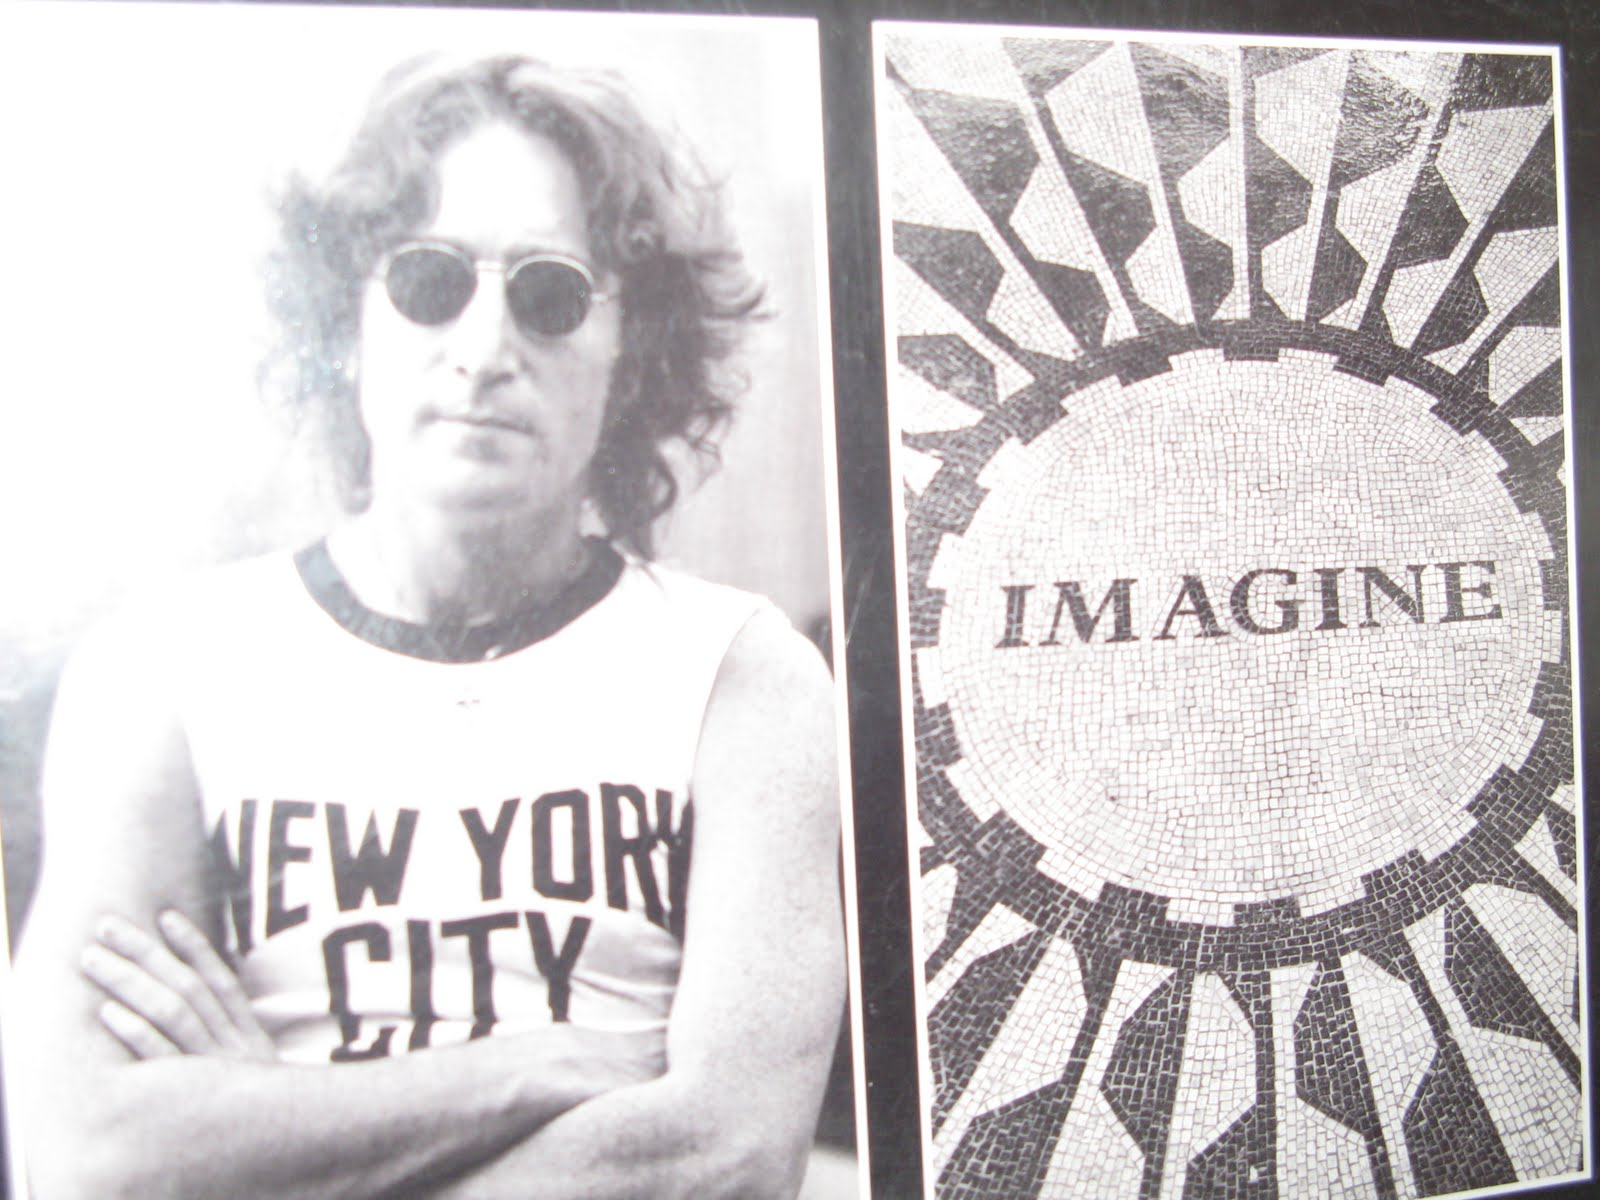 The Entrance Is Located On Central Park West At 72nd Street Across From Dakota Building Where Lennon And Yoko Ono Lived